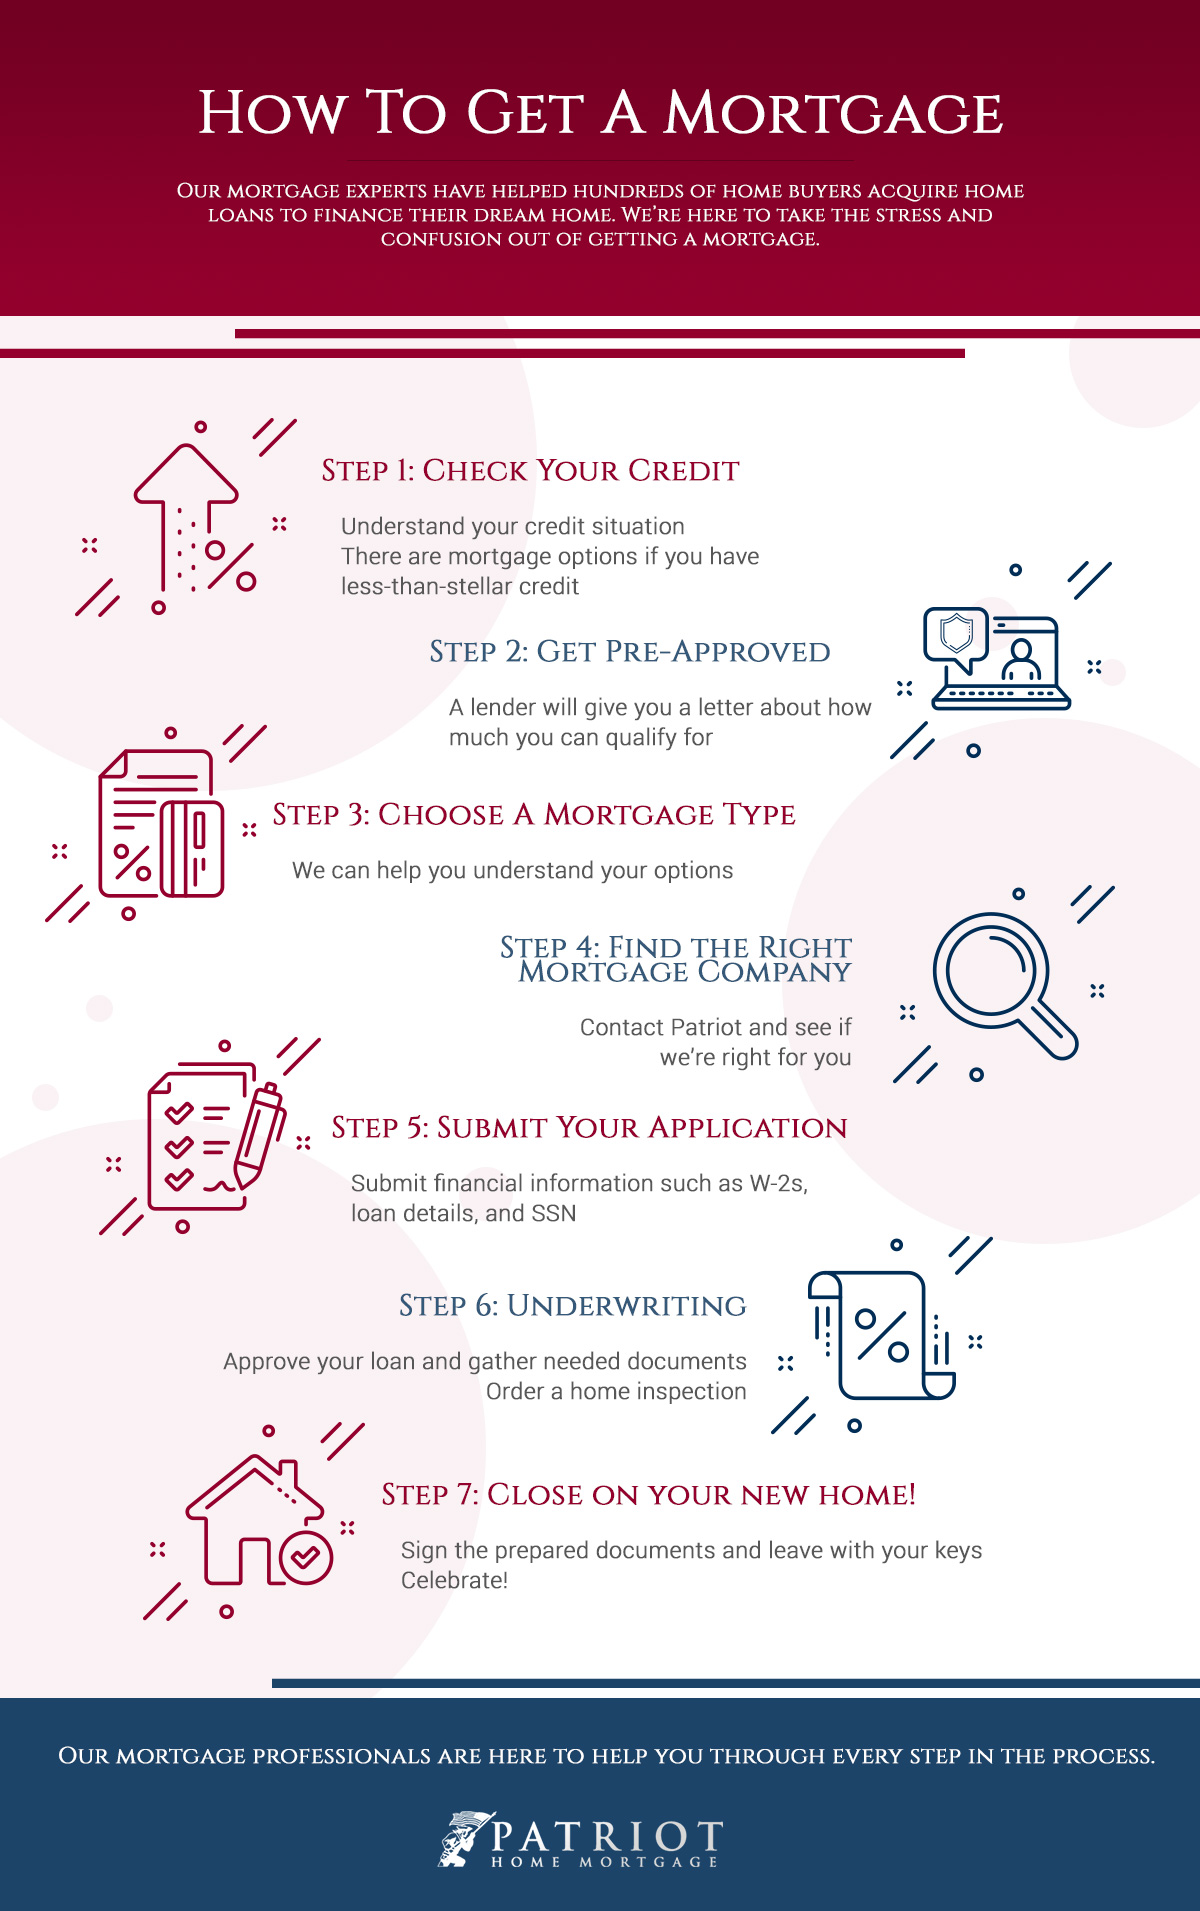 how to get a mortgage infographic